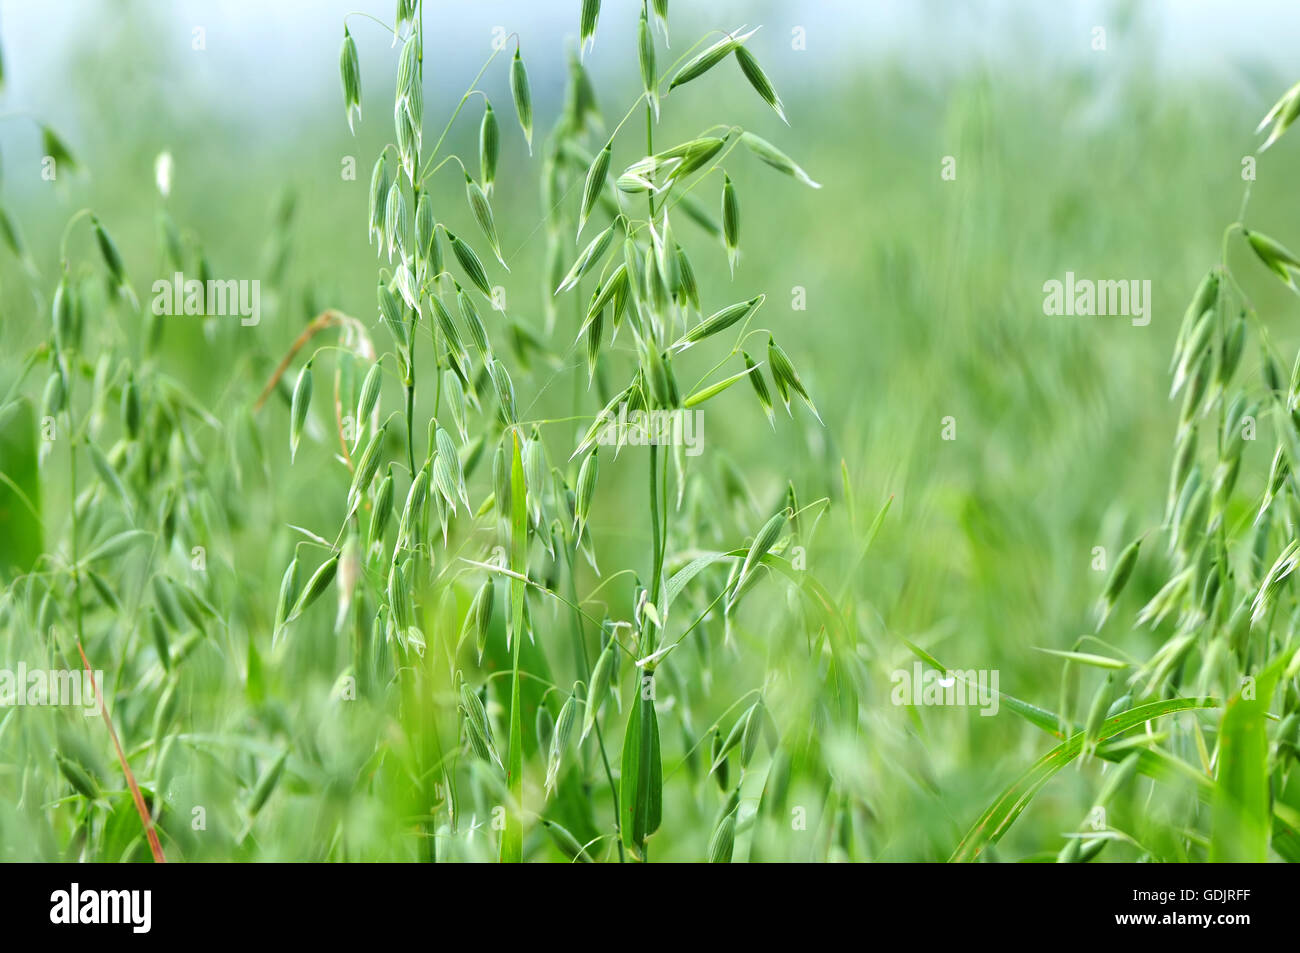 Close up photo of a oat plant - Stock Image